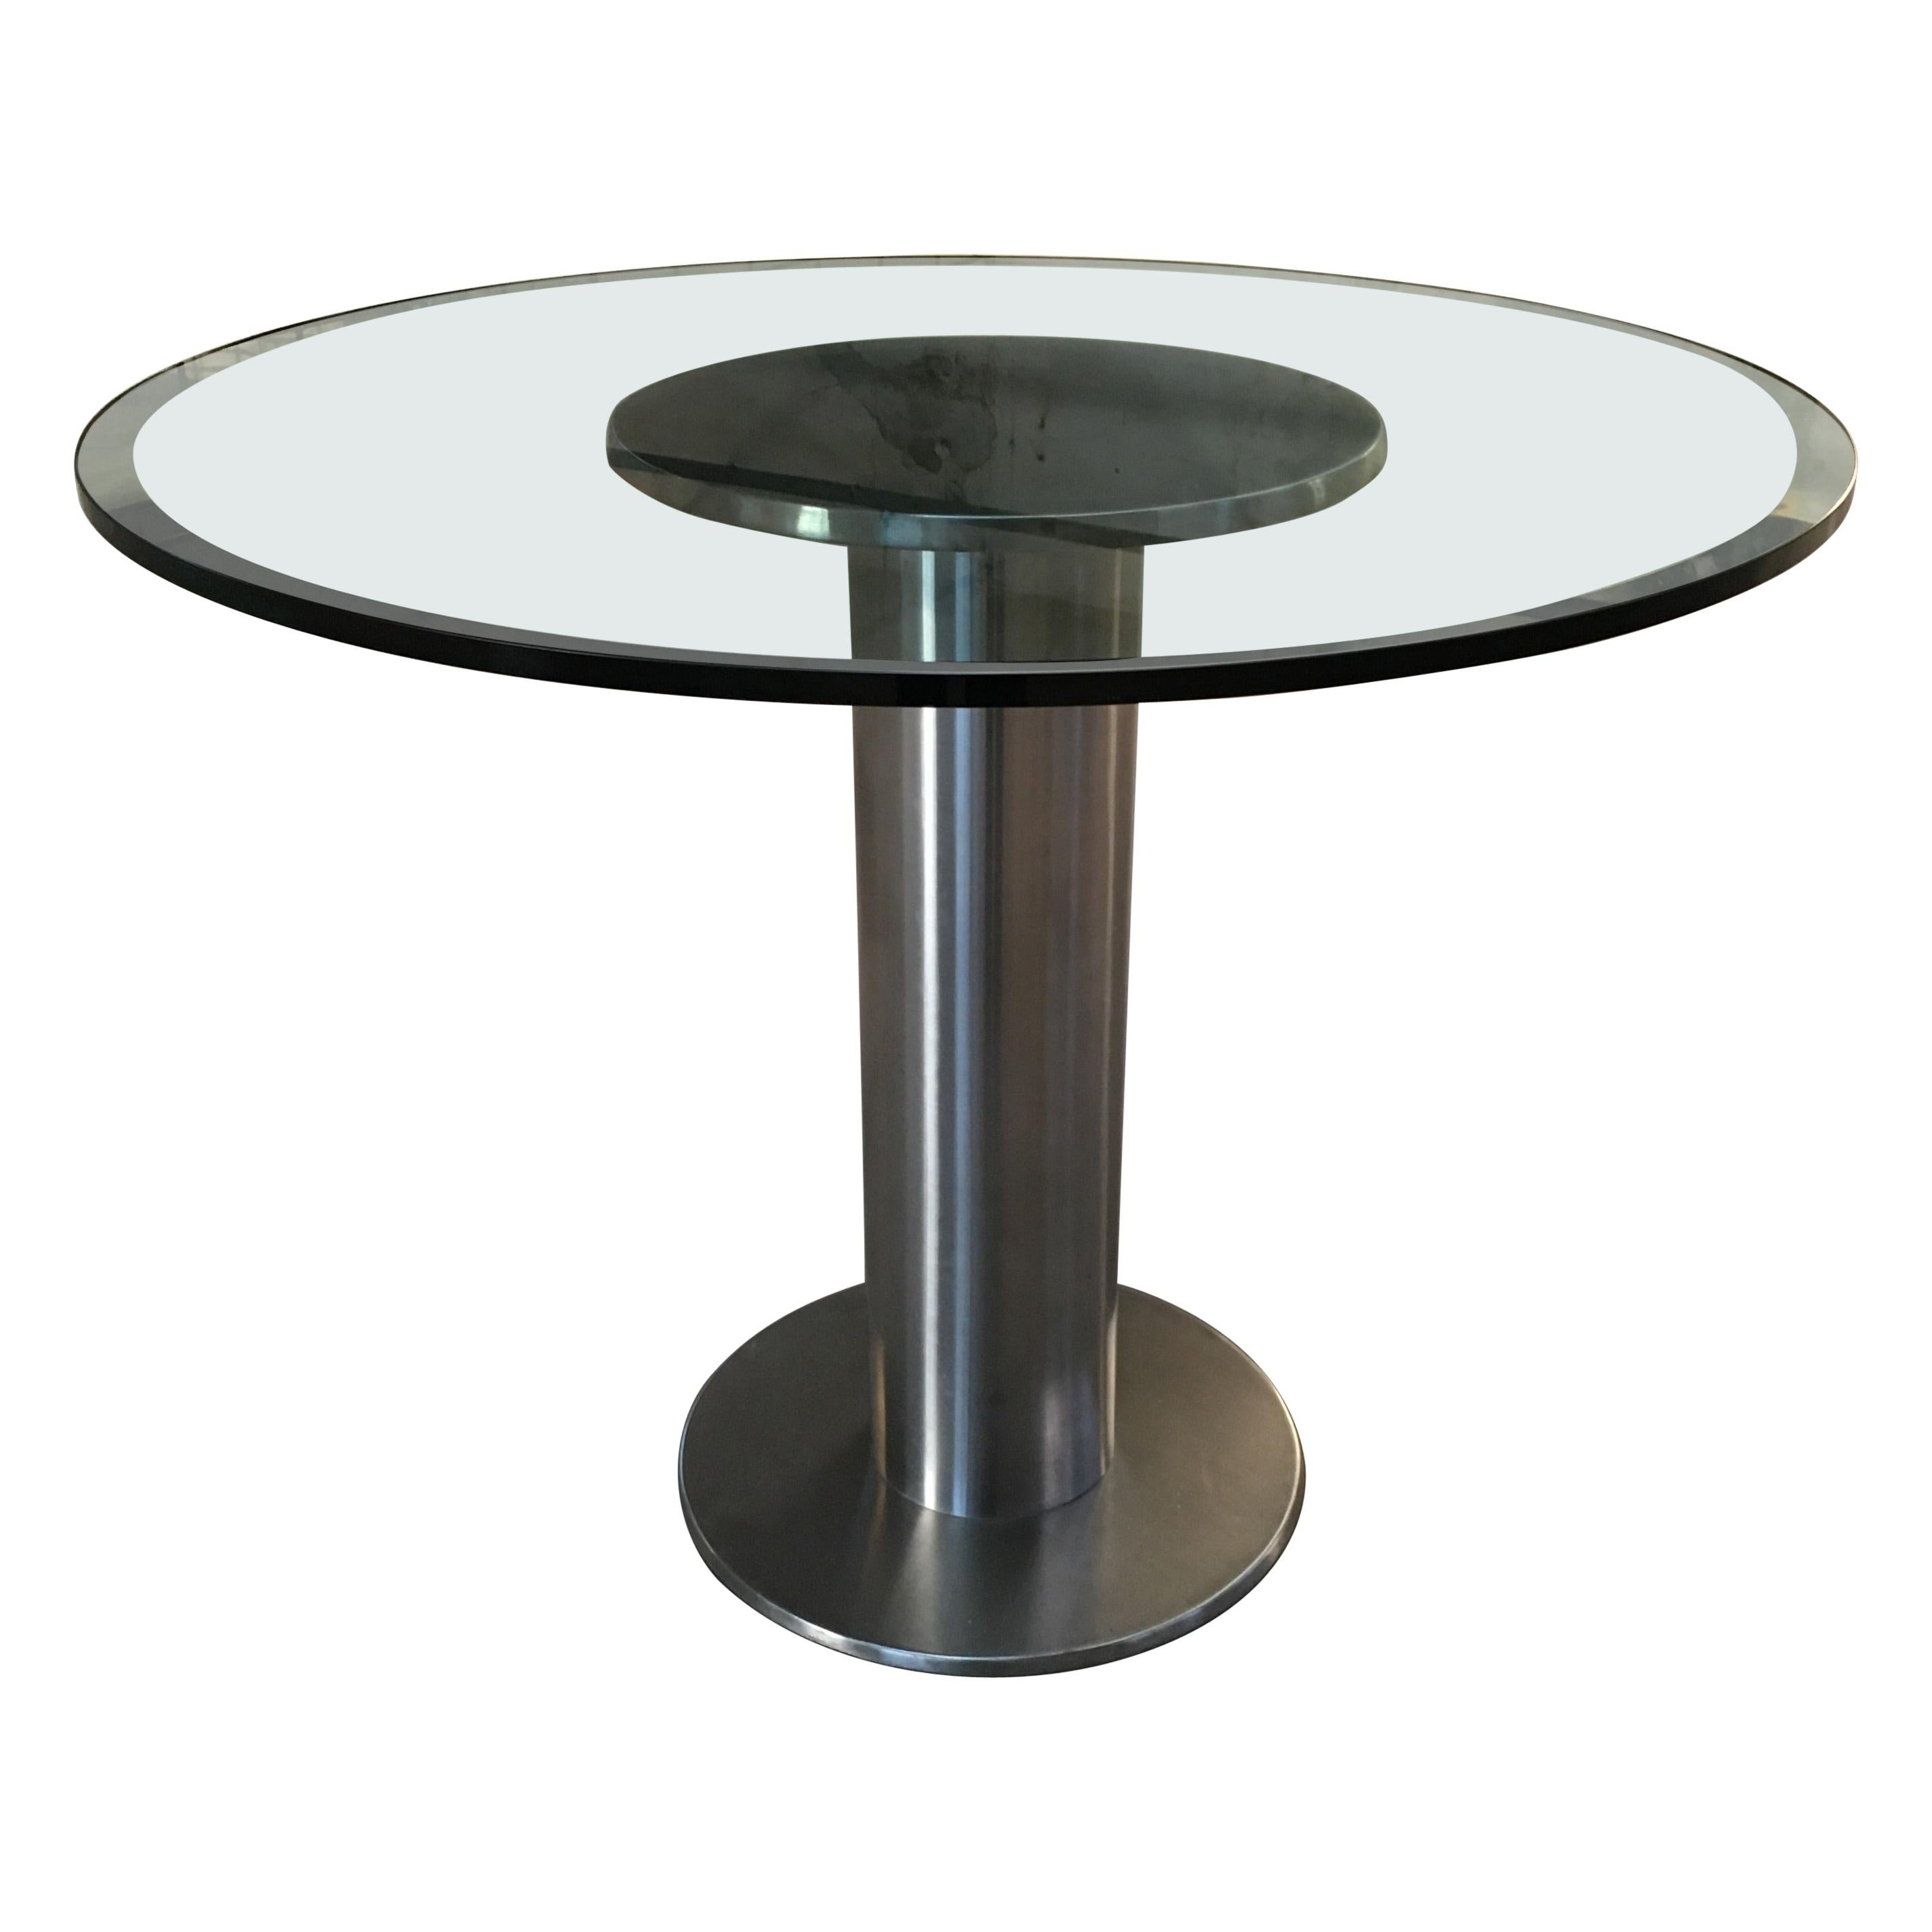 Mid-Century Modern Italian Chrome Dining or Center Table with Glass Top, 1970s